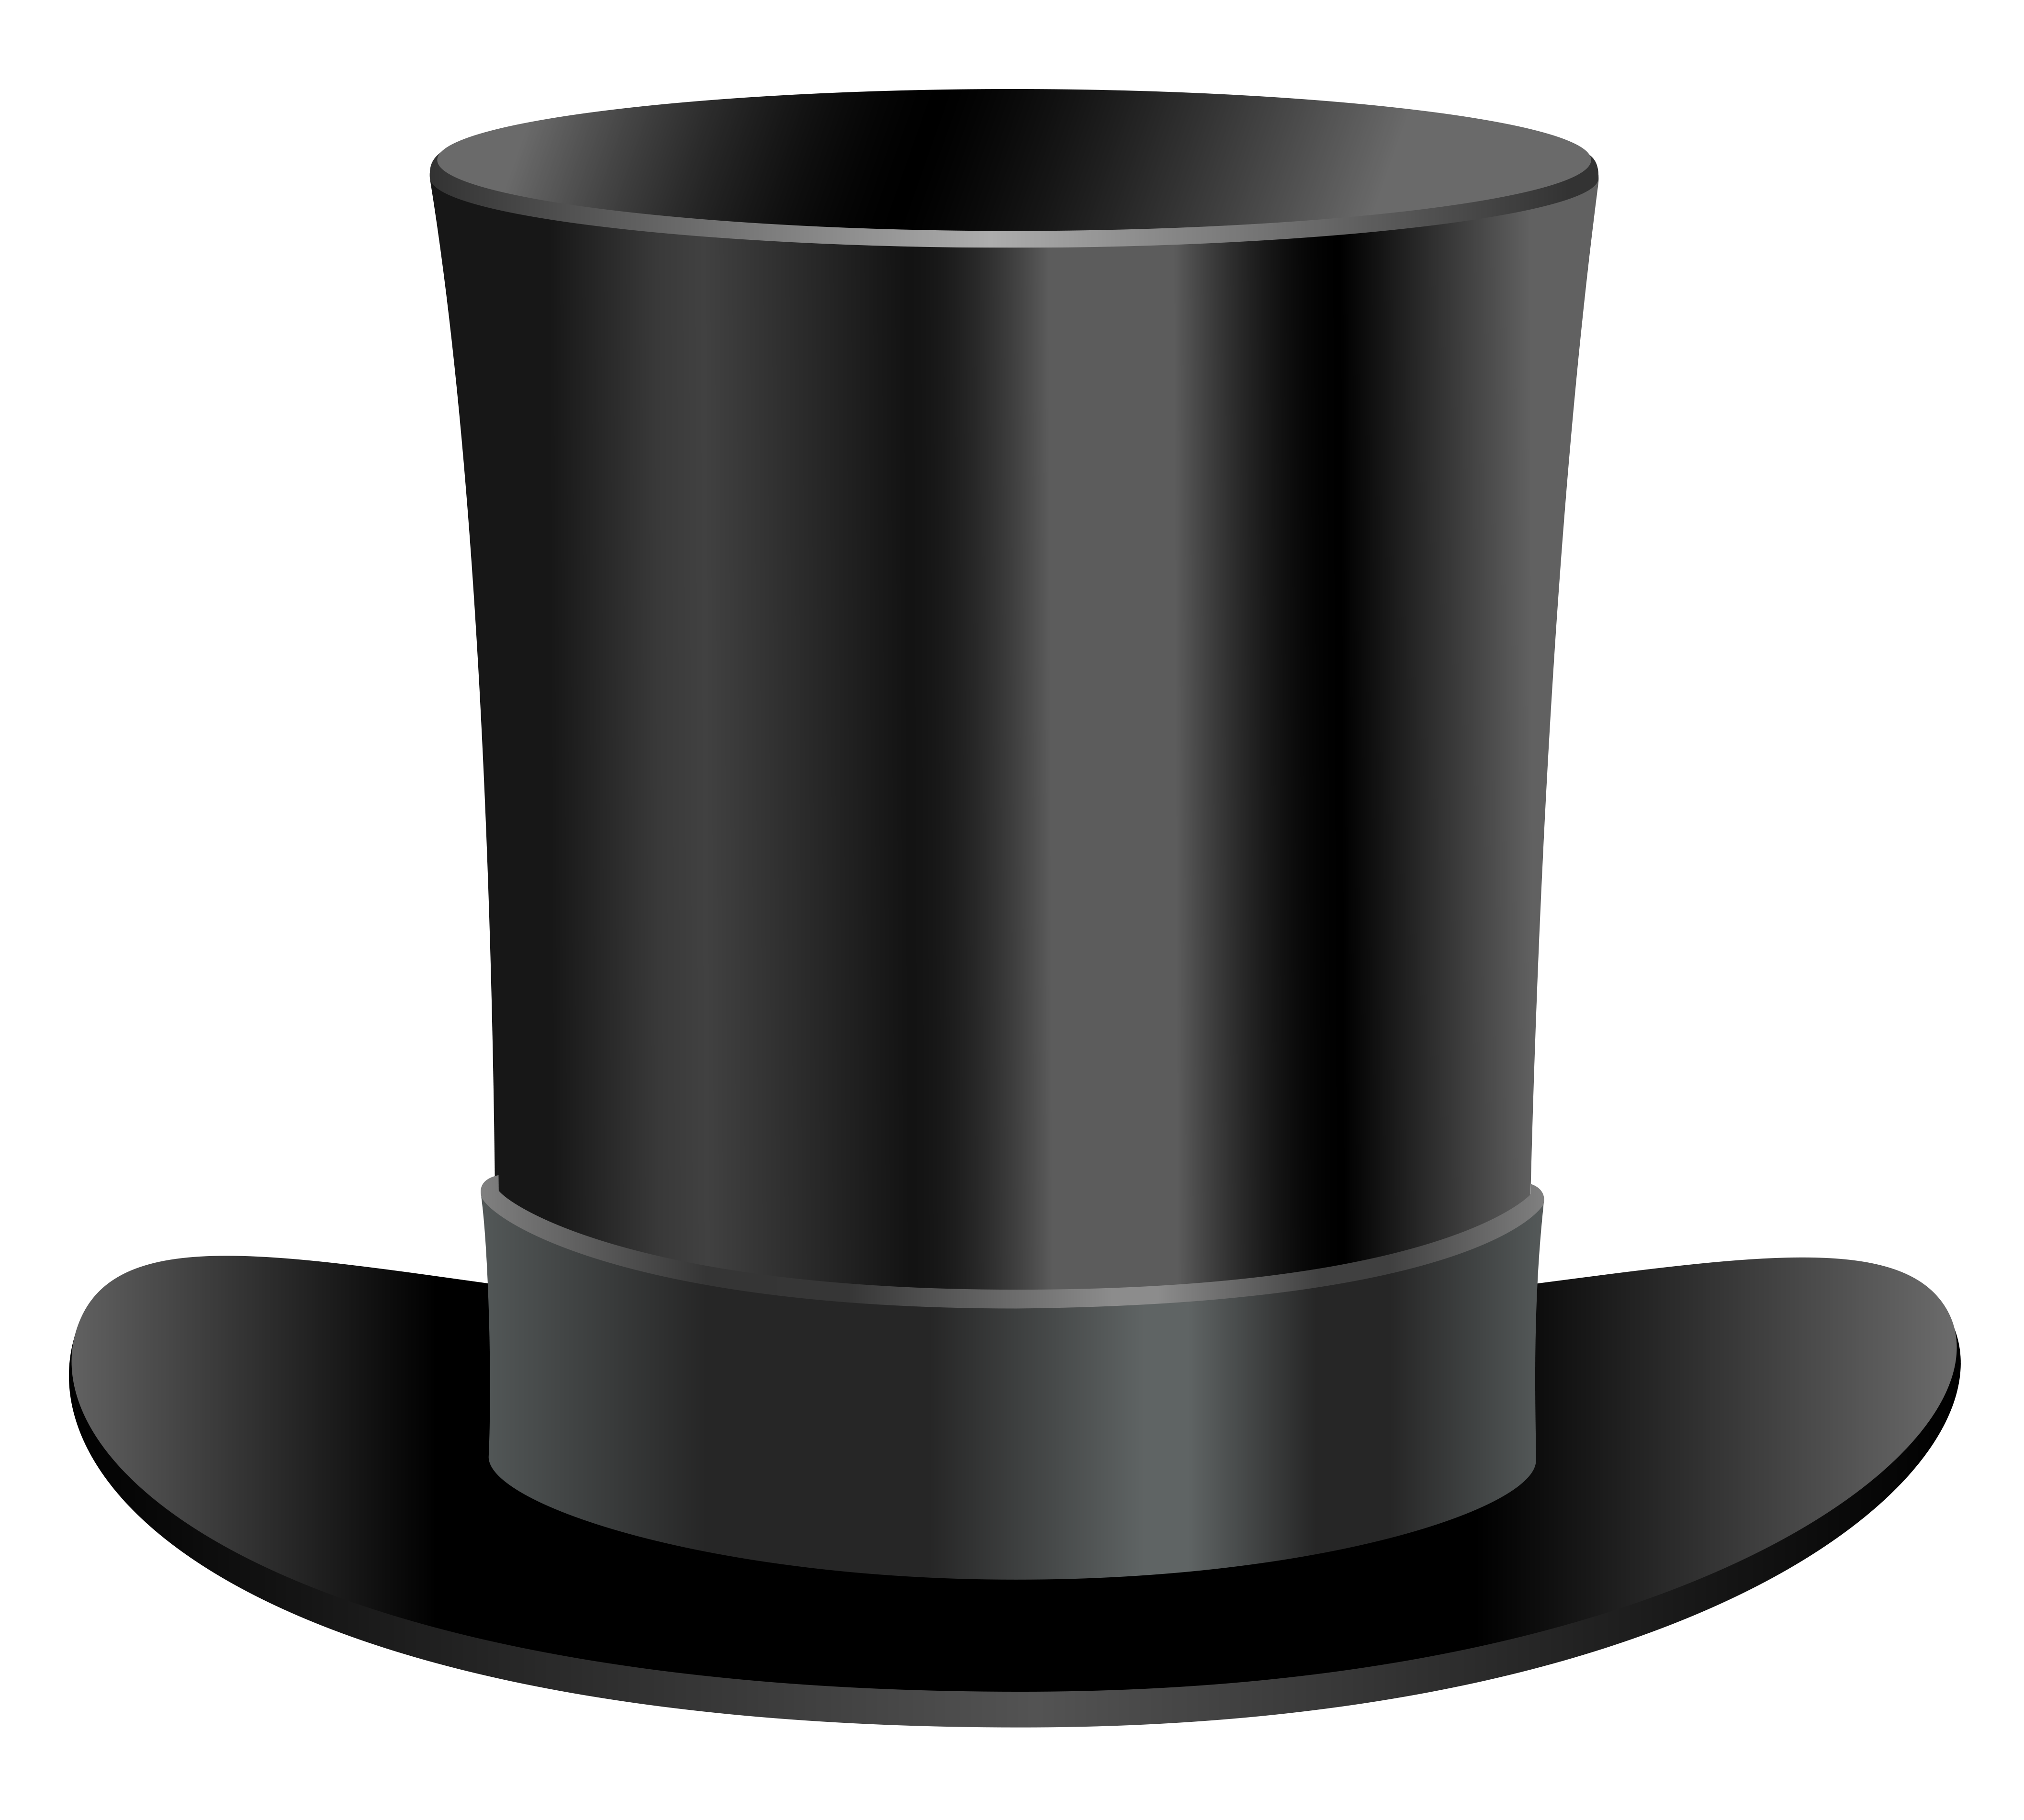 Free Top Hat Pictures, Download Free Clip Art, Free Clip Art on.